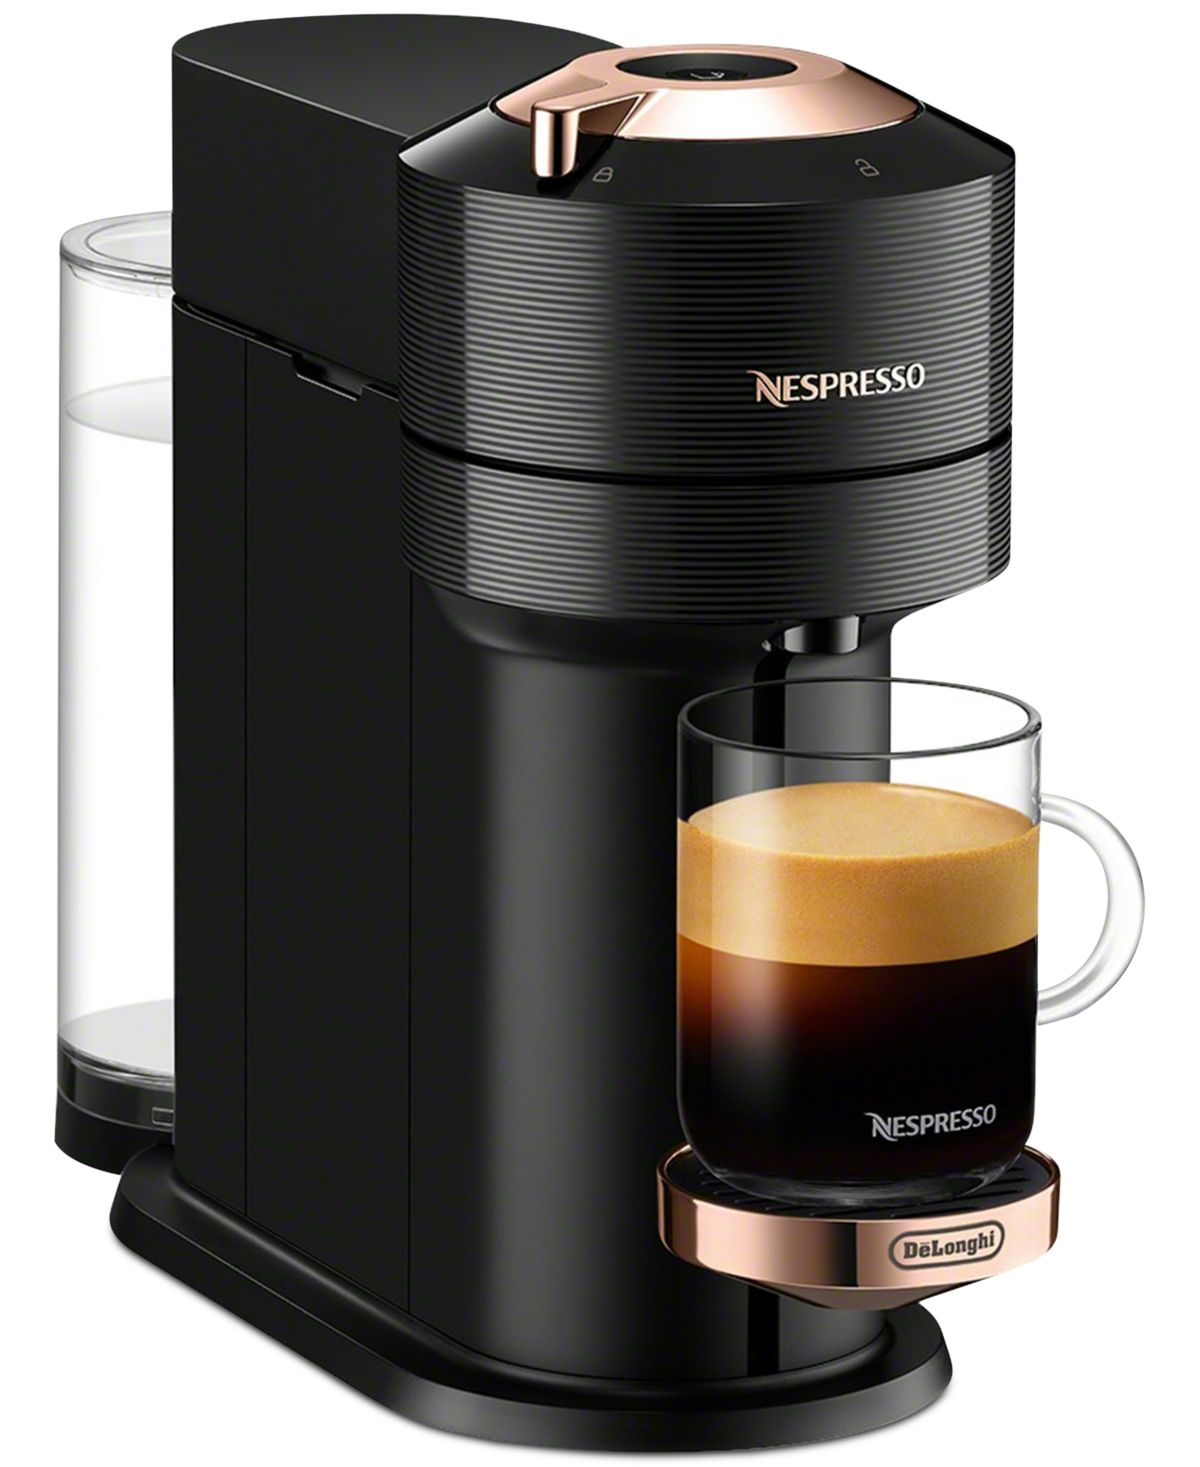 Nespresso Vertuo Next Premium Coffee and Espresso Maker by